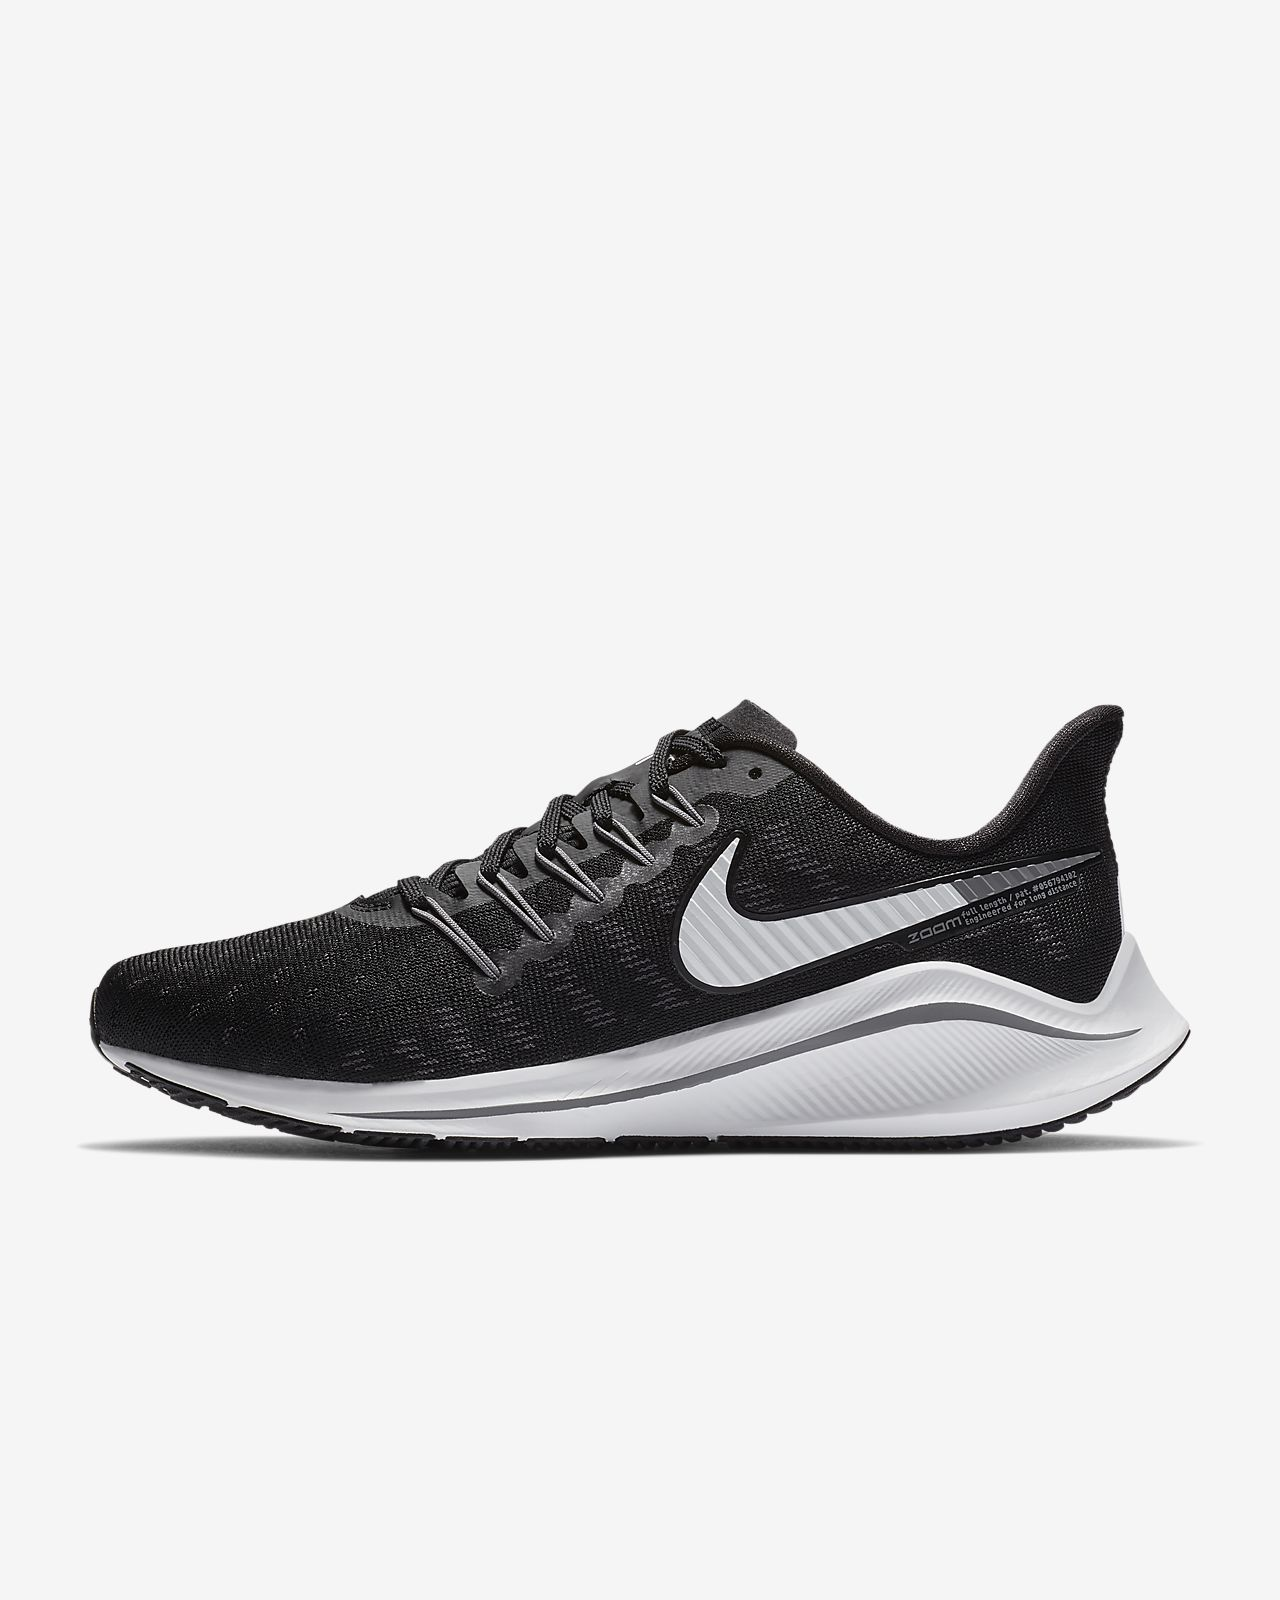 Nike Air Zoom Vomero 14 Women's Running Shoe (Wide)